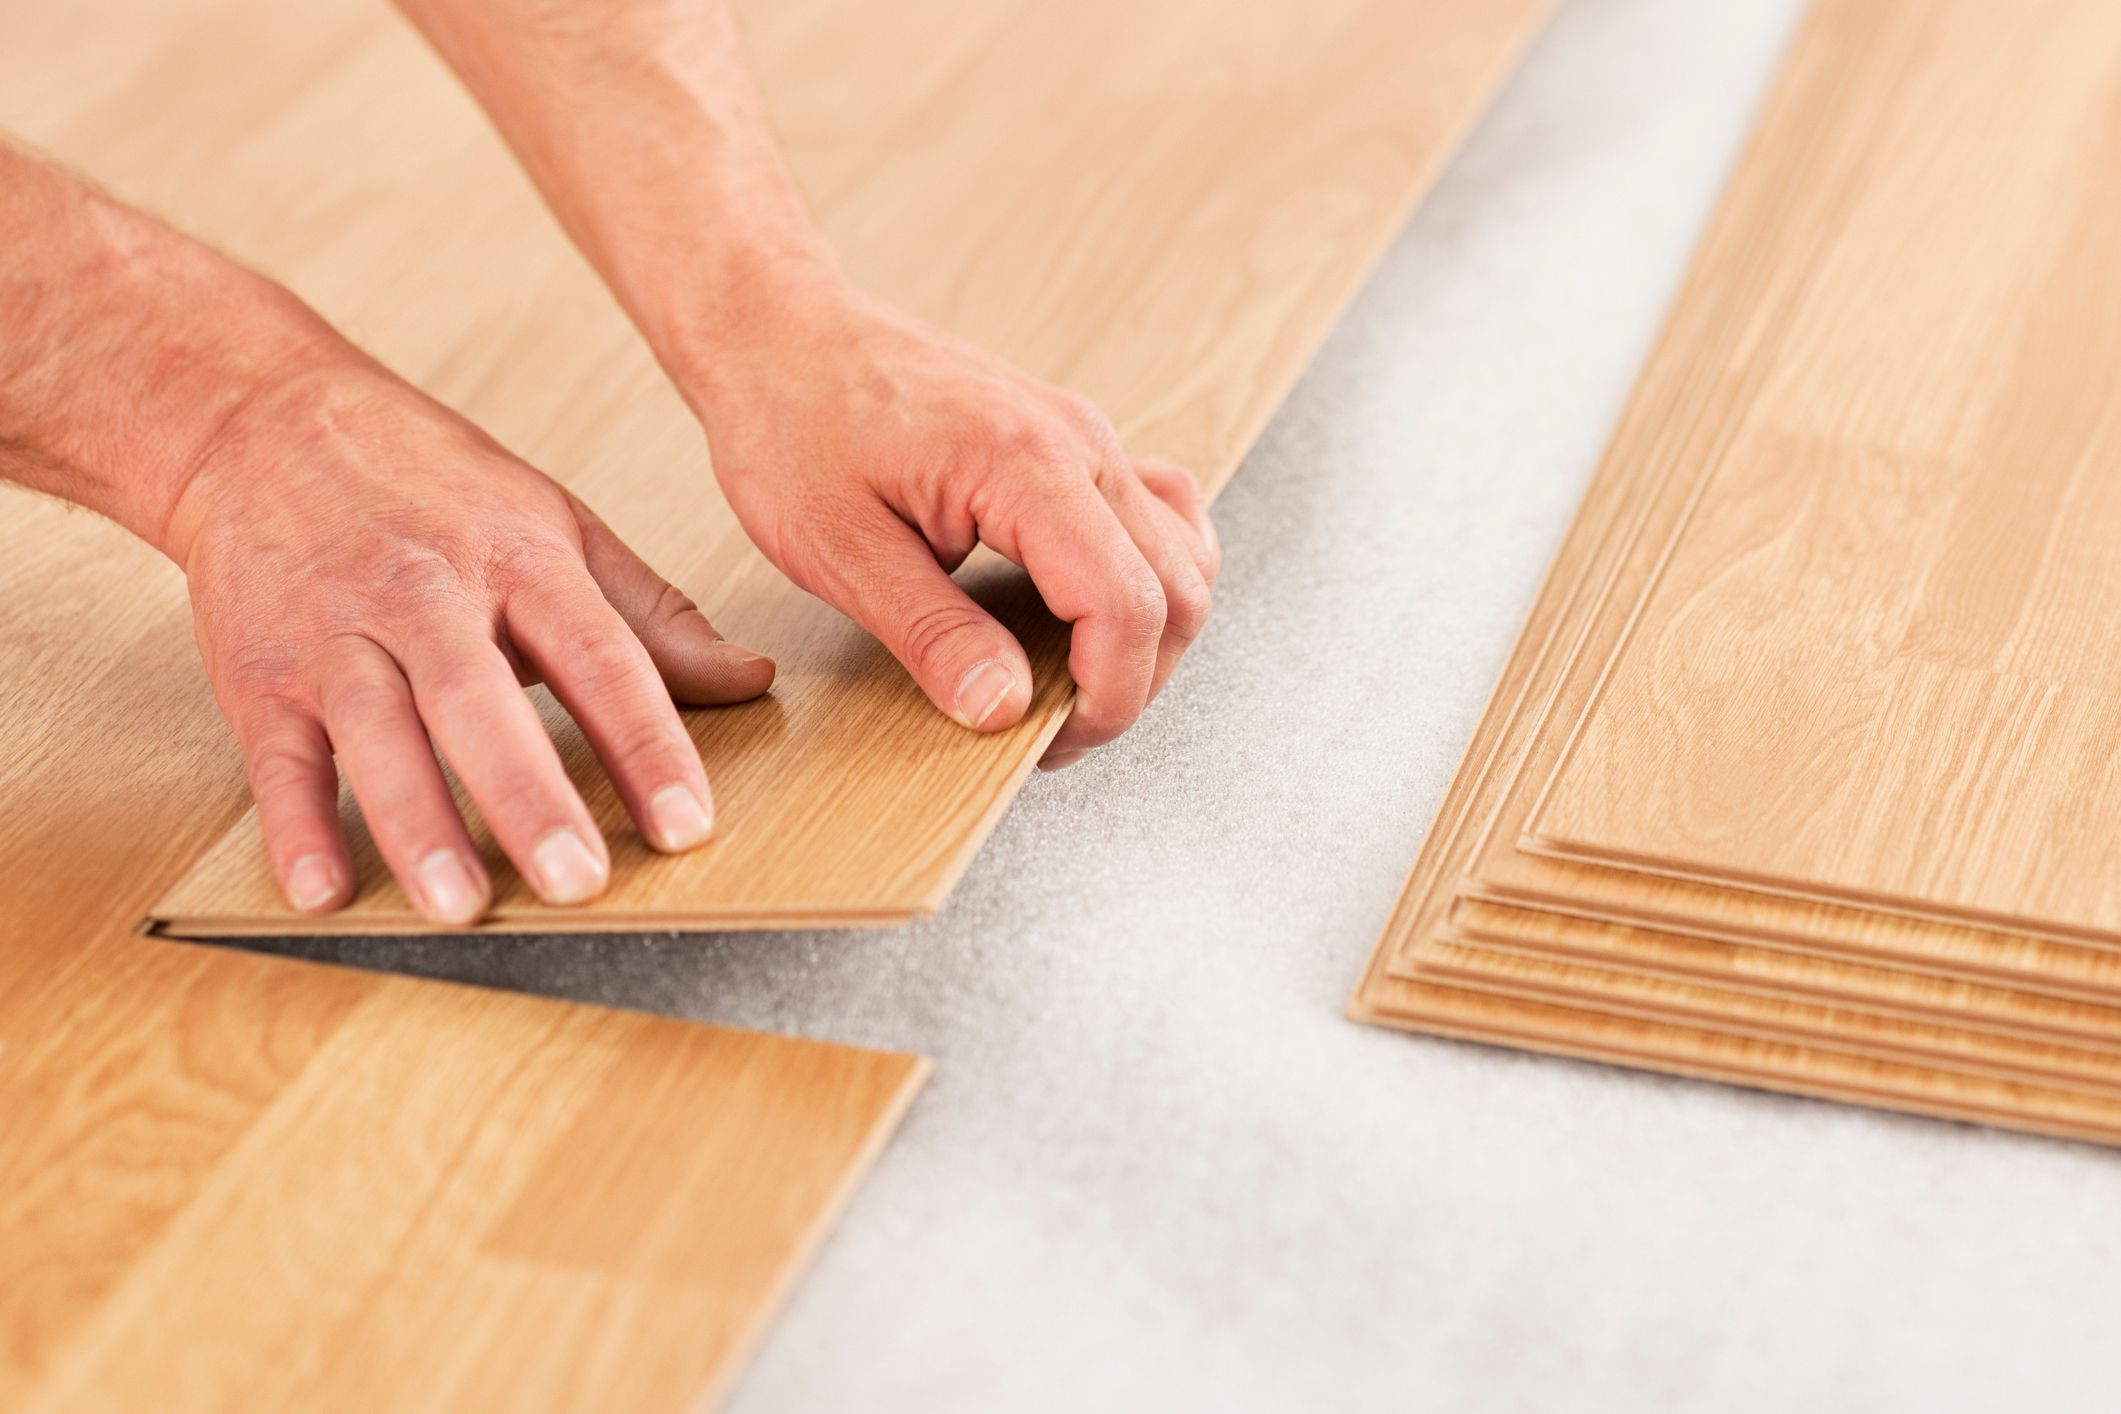 putting hardwood floor on concrete slab of laminate underlayment pros and cons intended for laminate floor install gettyimages 154961561 588816495f9b58bdb3da1a02